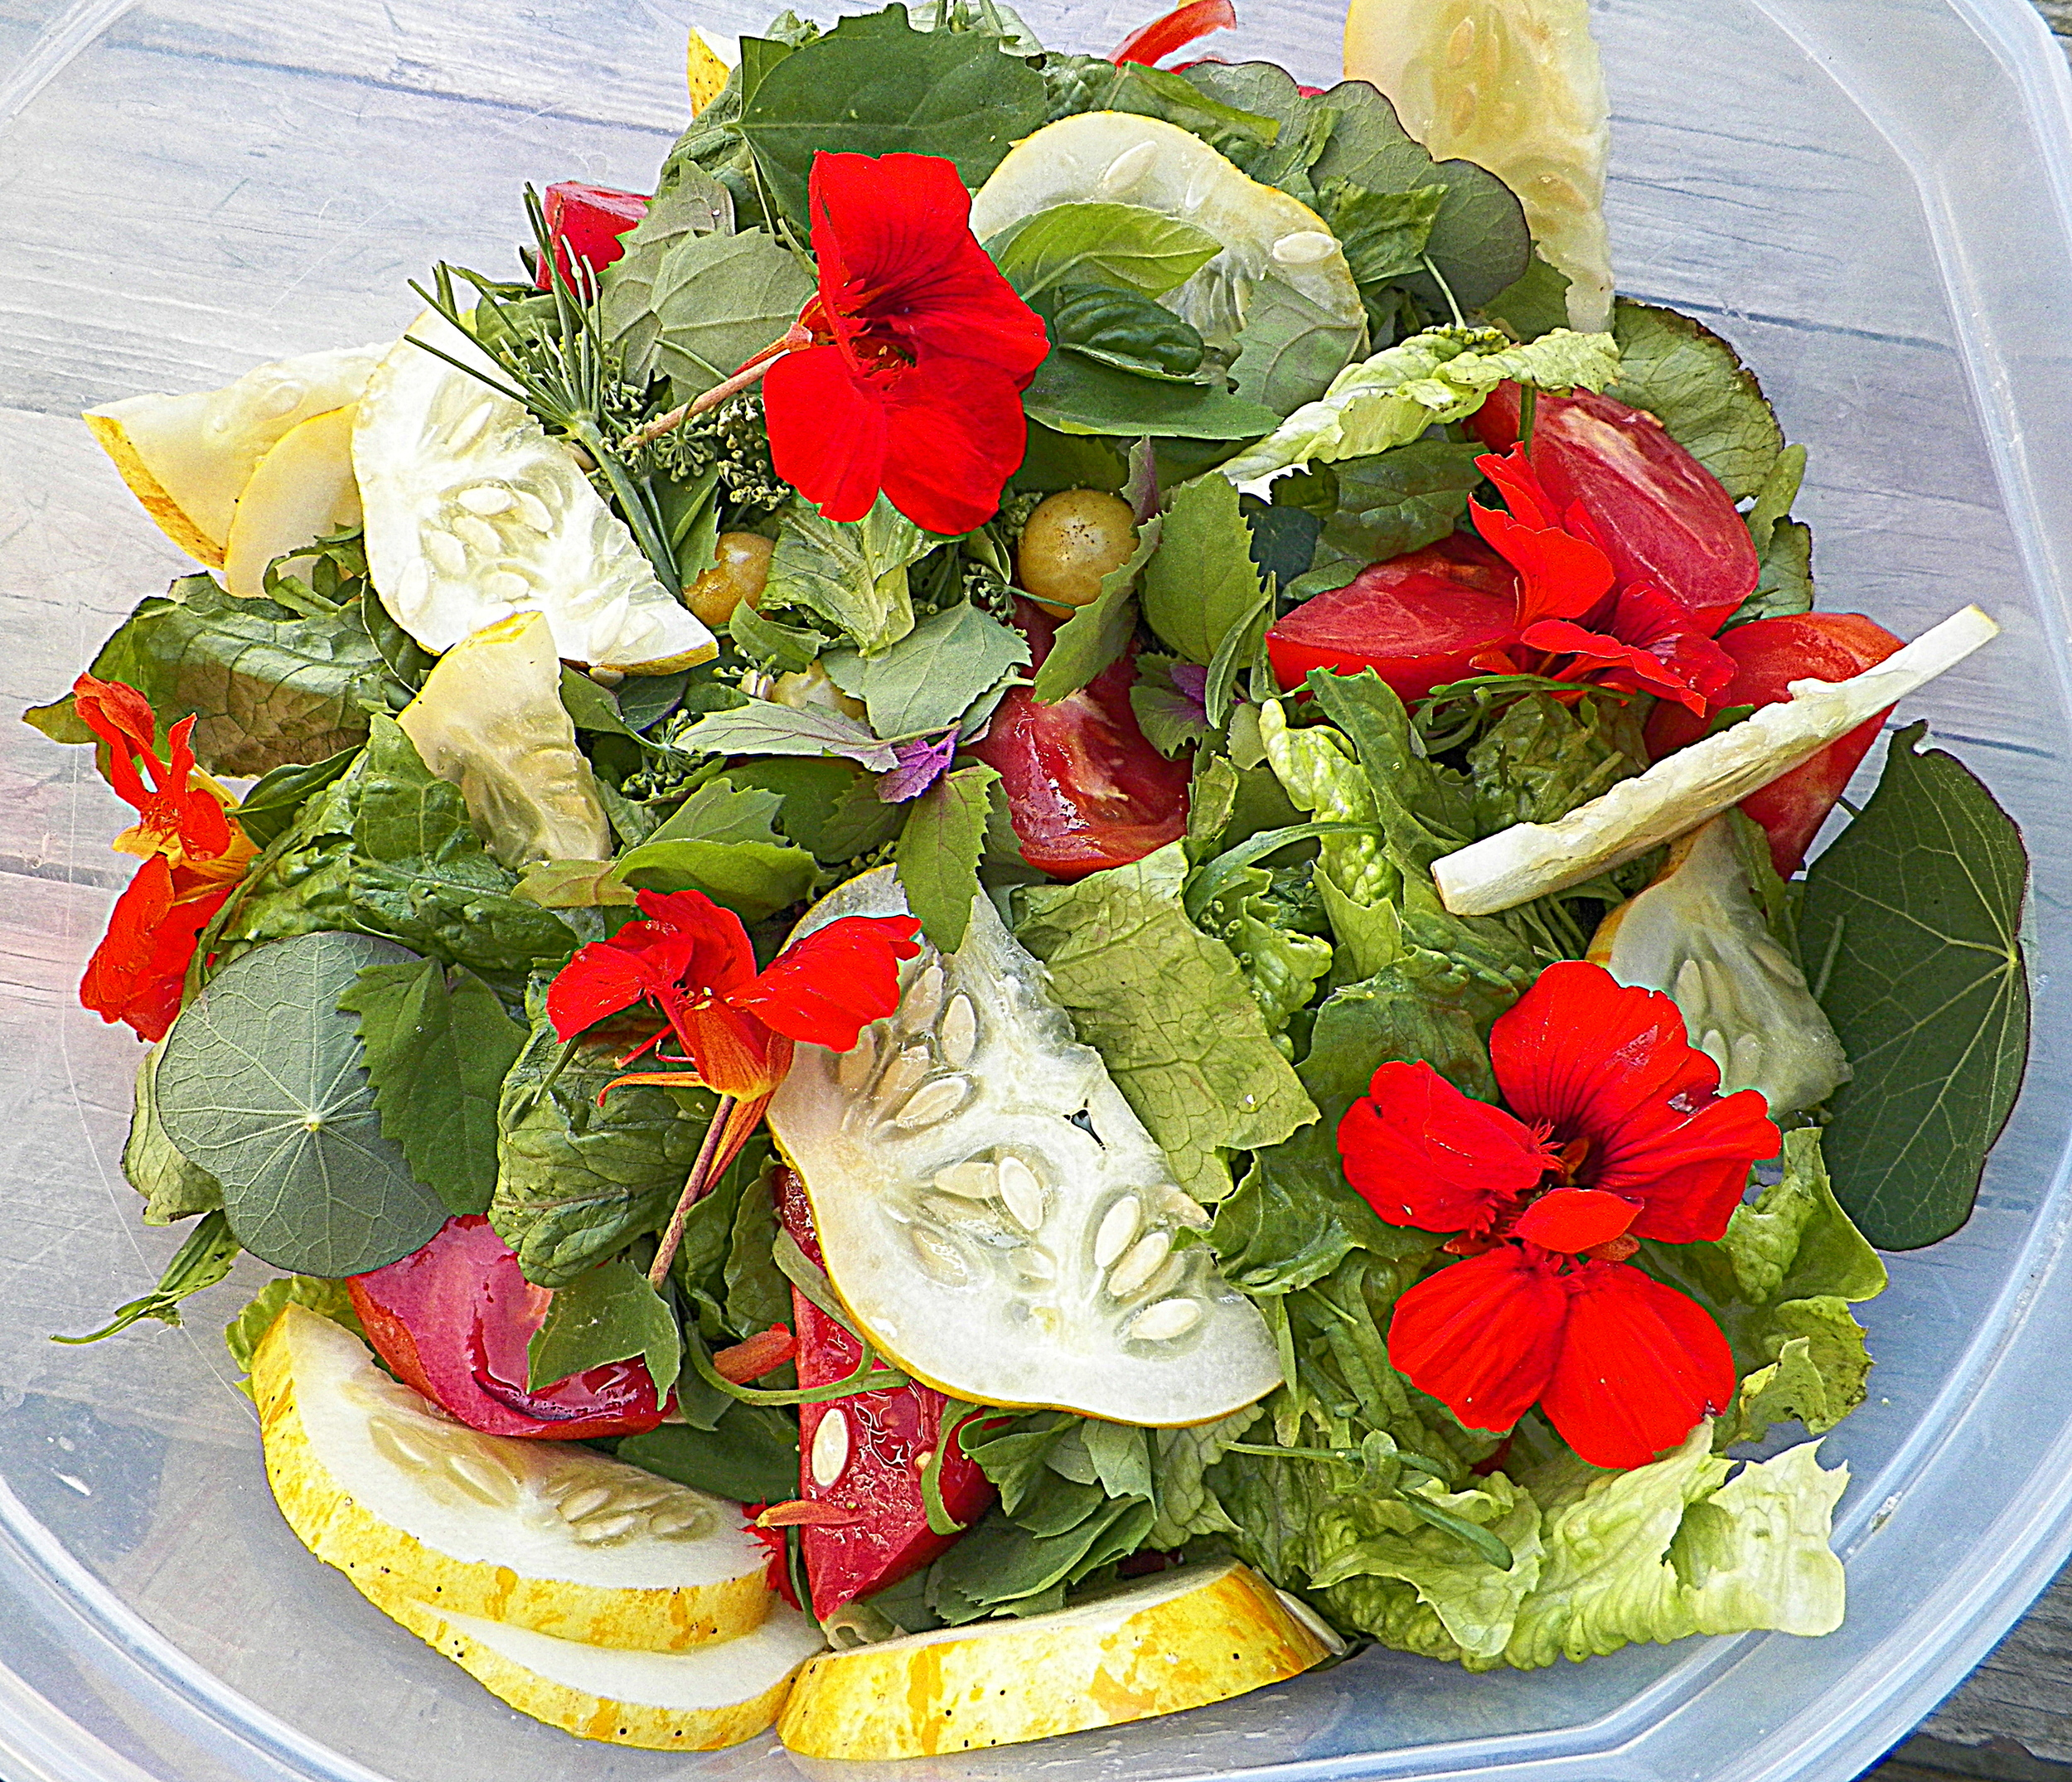 Salad w/ peppercress, fennel buds, lemon cukes, basil, nasturtiums, etc